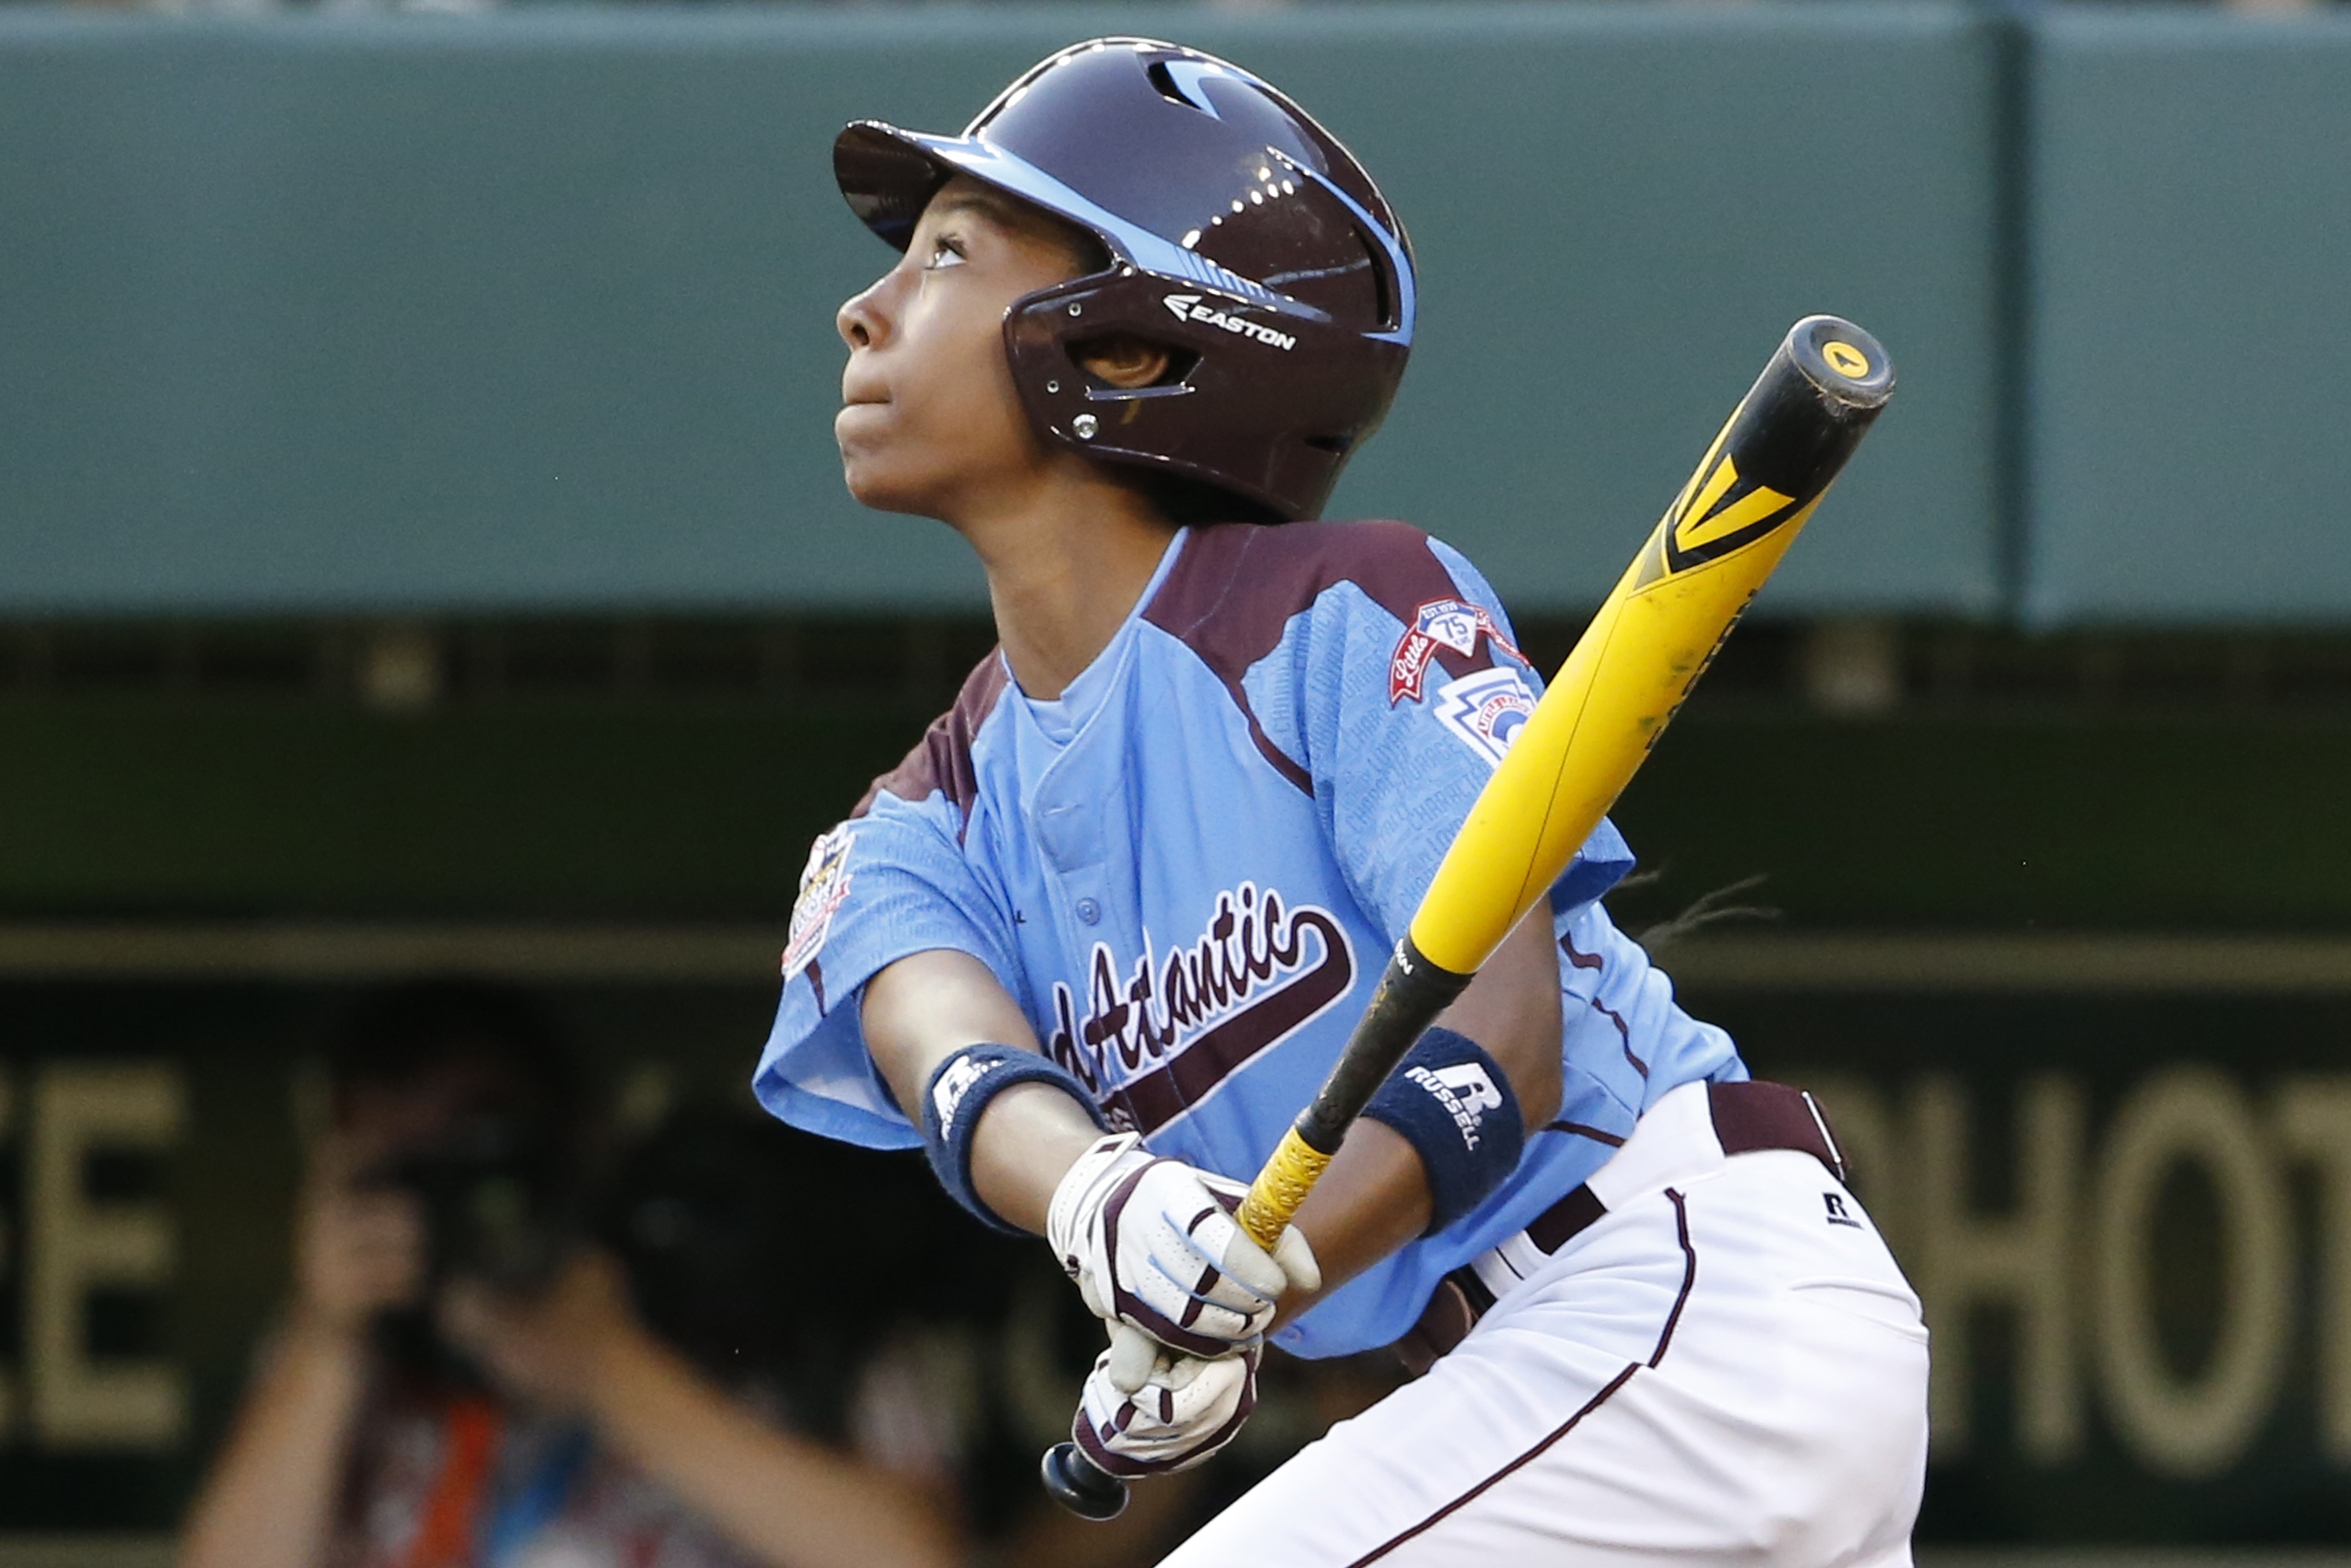 Philadelphia's Mo'ne Davis drives in a run with a single to right field off Pearland  pitcher Clayton Broeder during the first inning of a baseball game at the Little League World Series tournament in South Williamsport, Pa., Sunday, Aug. 17, 2014.